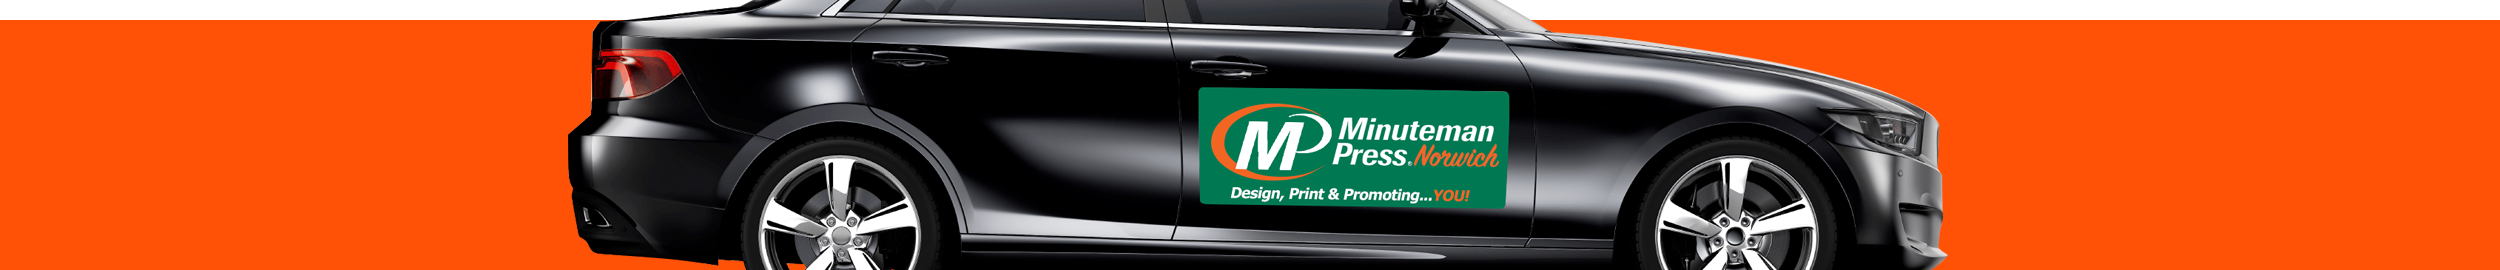 Magnetic Signs Banner | Minuteman Press Norwich